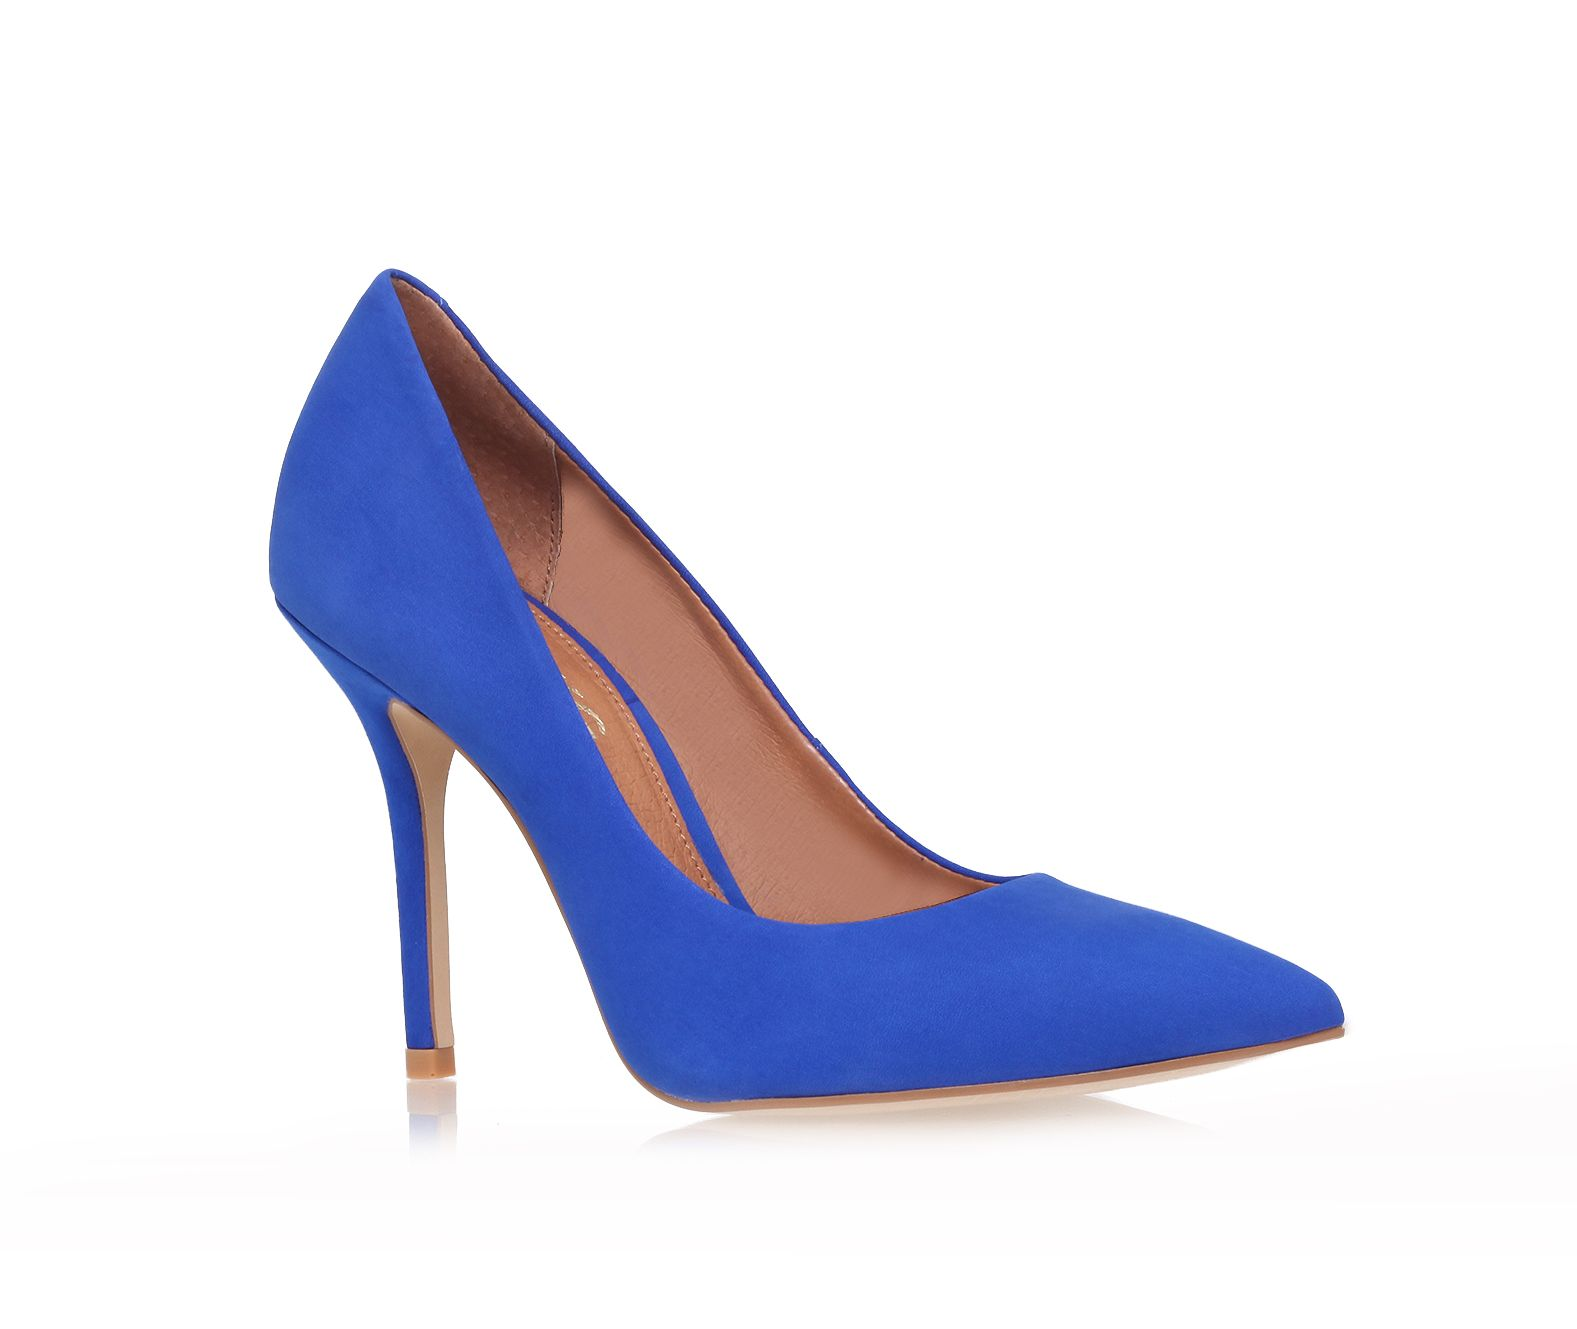 Anabela heeled court shoes